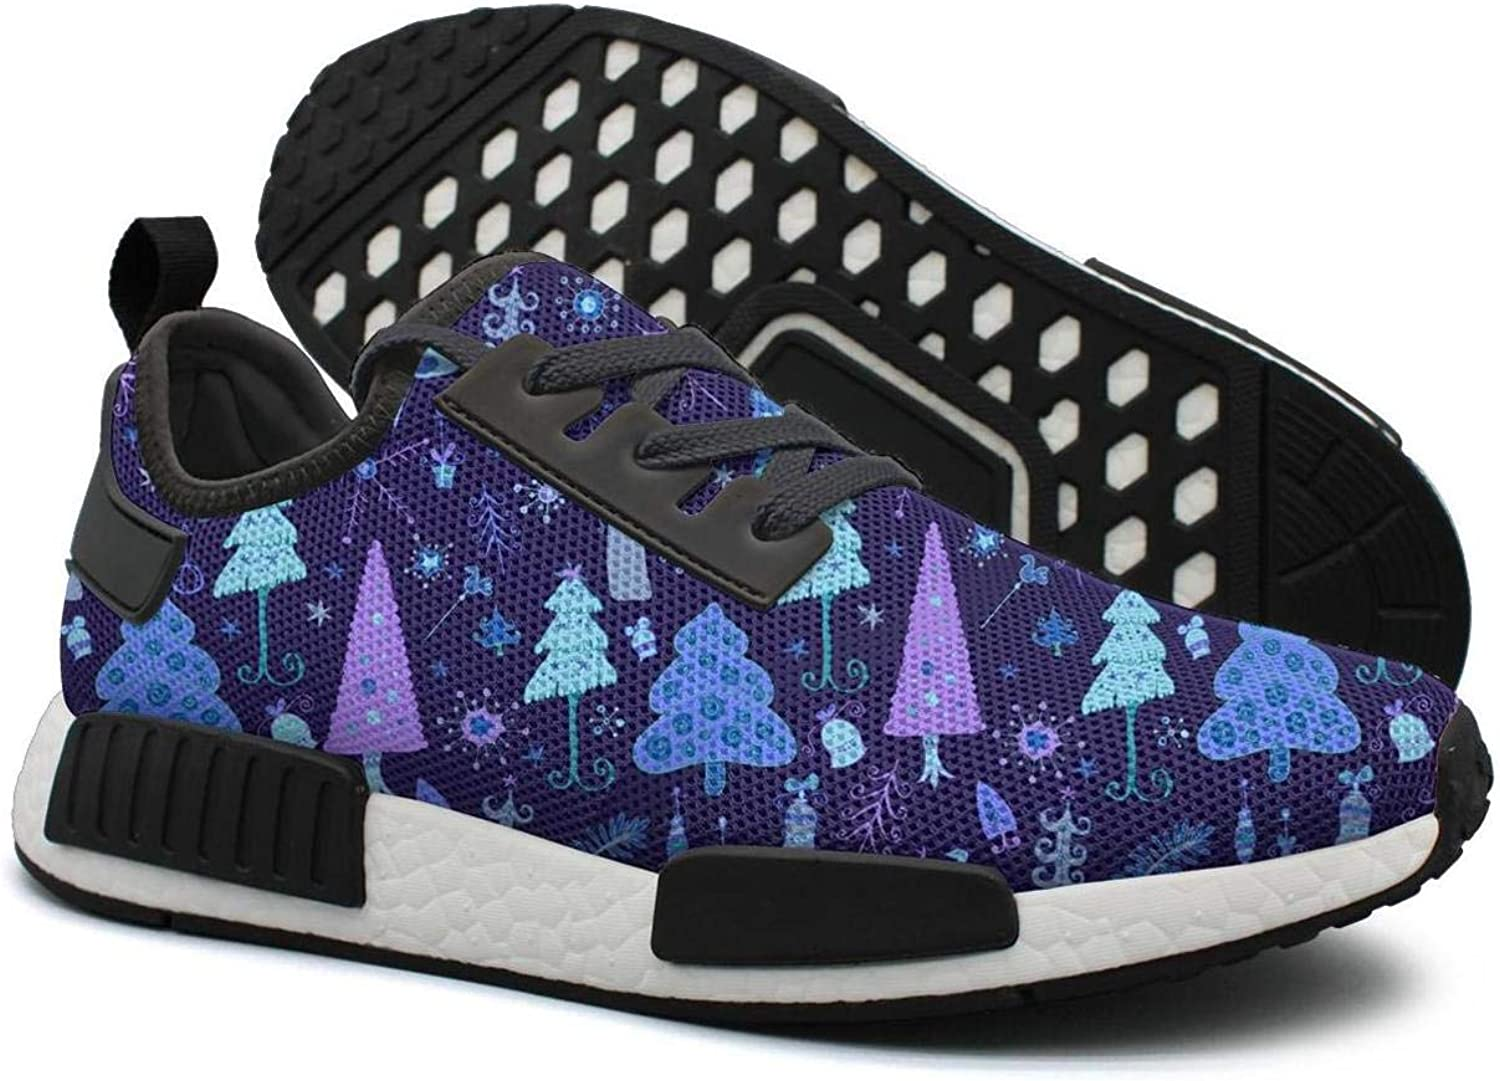 Ktyyuwwww Women's colorful Cool Sneaker Purple Christmas Trees Unique Sports Running shoes